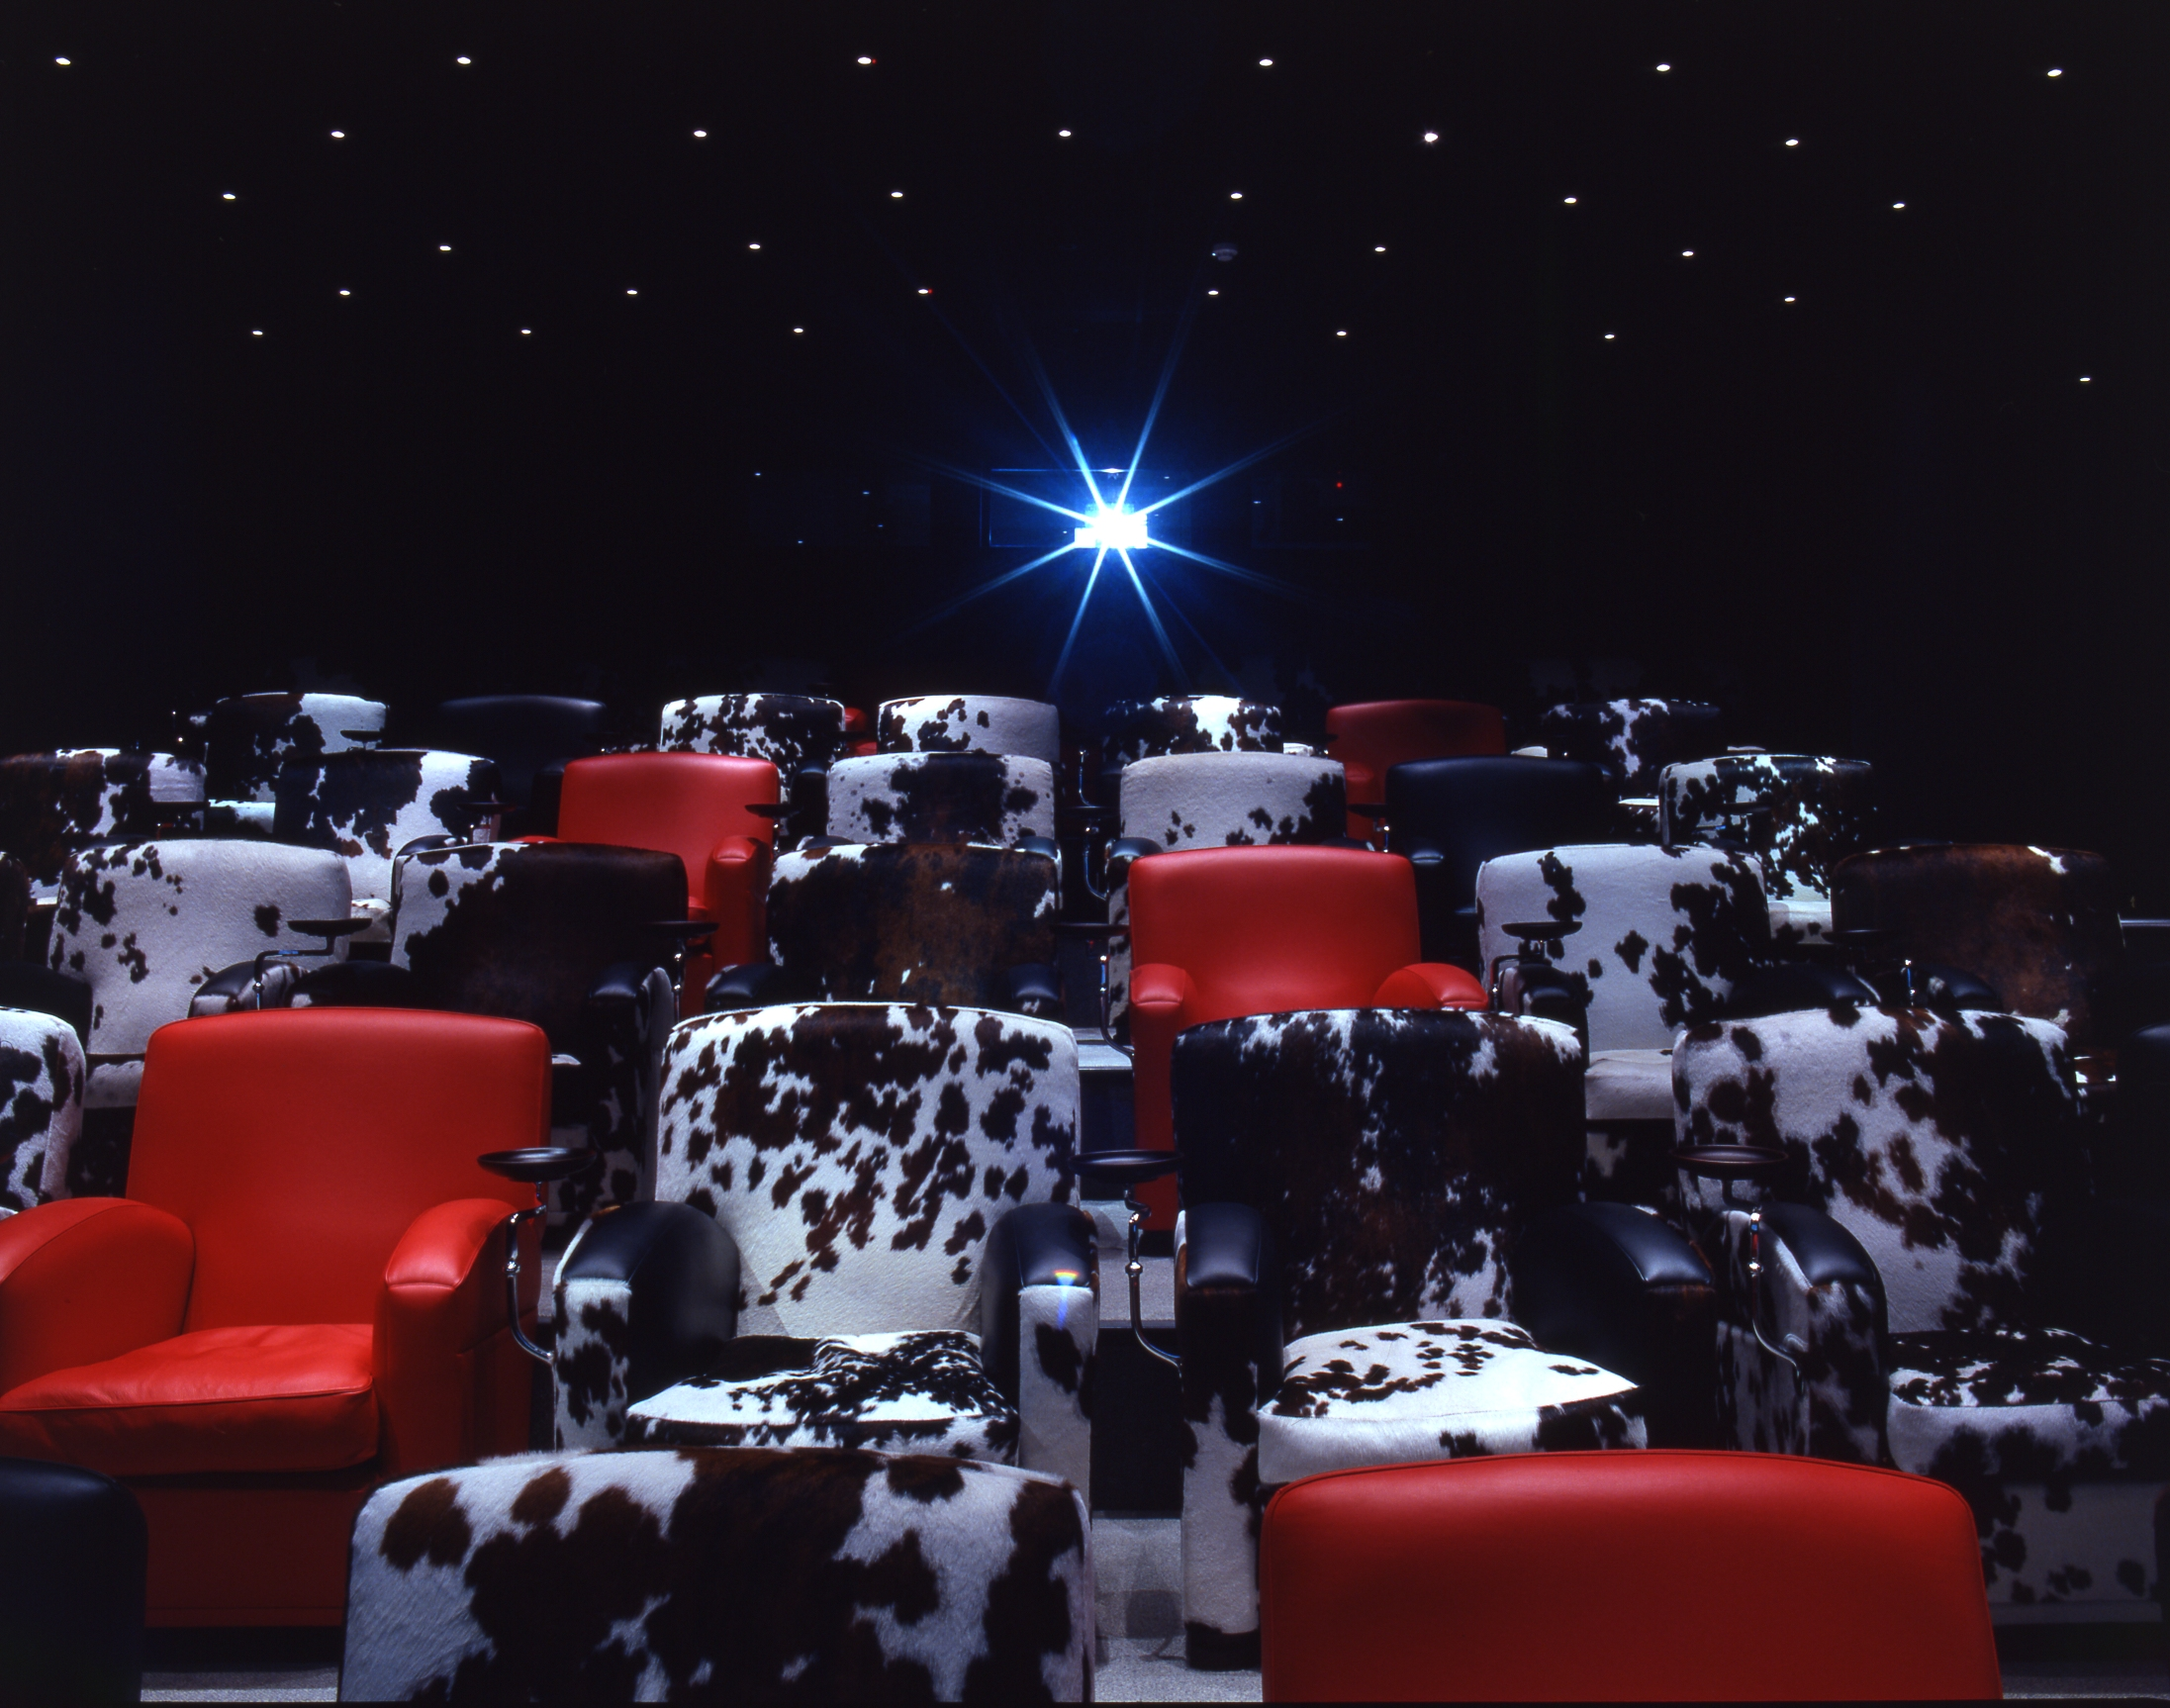 Romantic things to do while in London, for Valentine's Day and special occasions. Soho Hotel Film Club for £40 per person